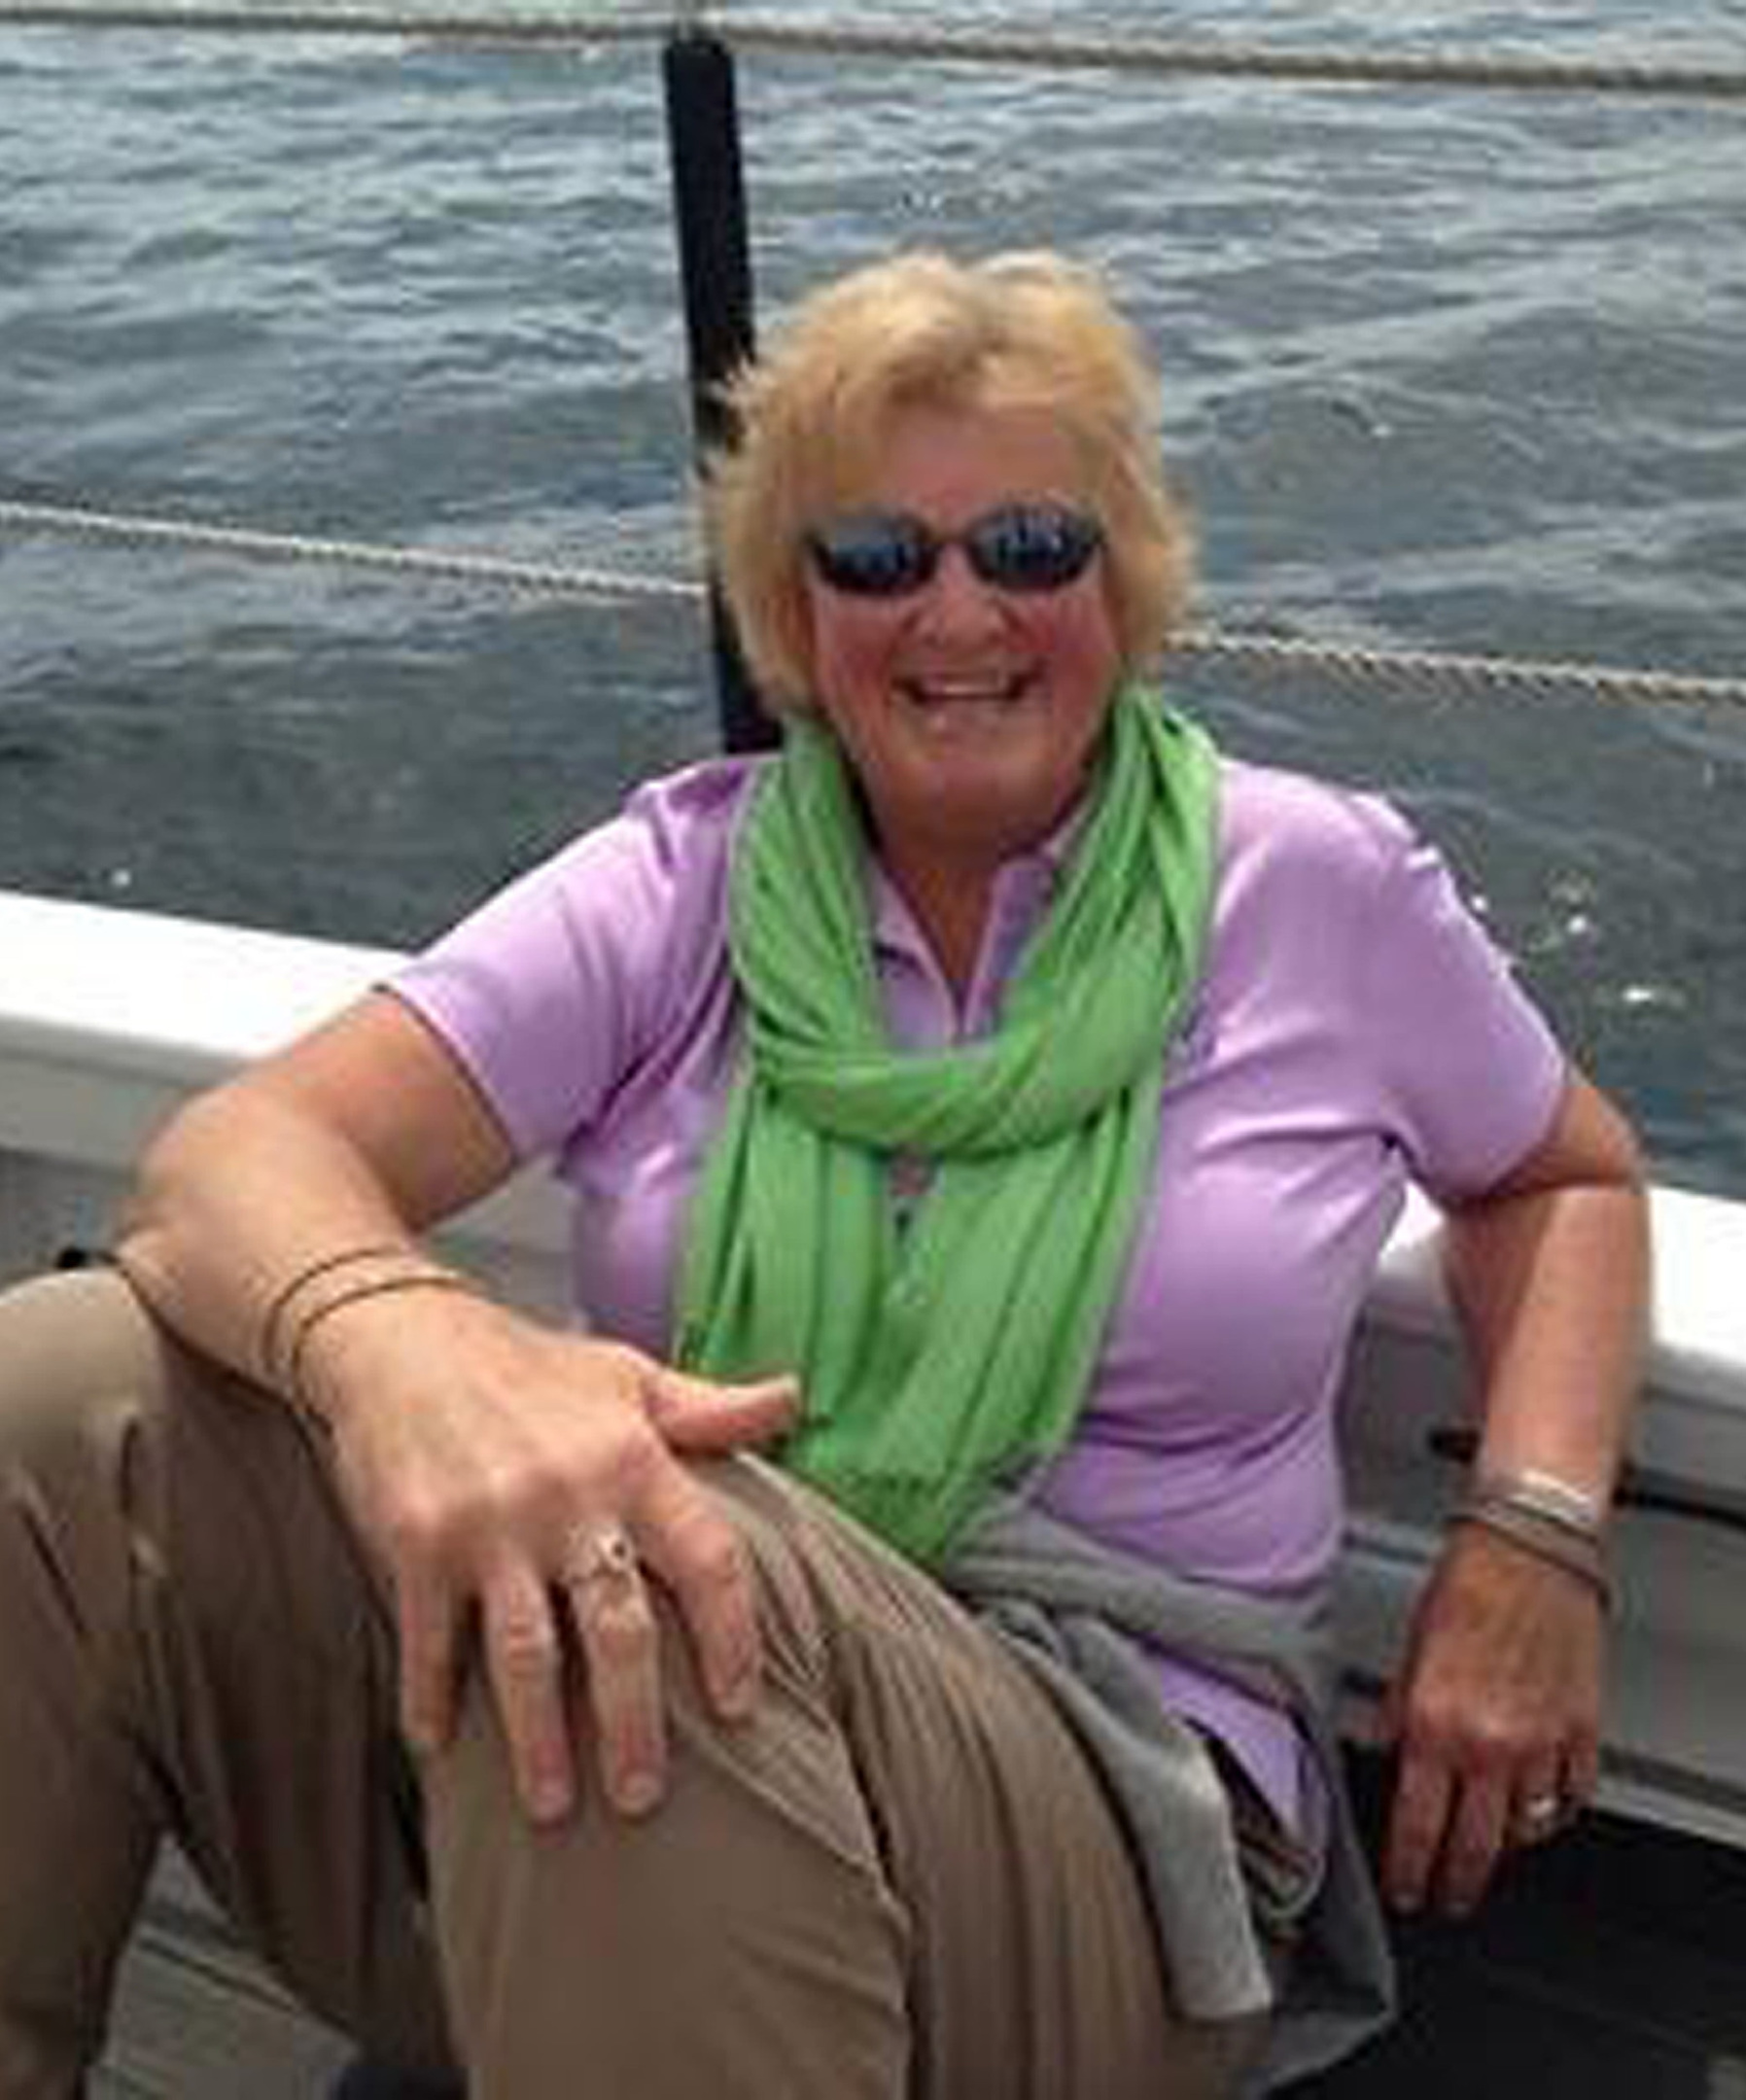 Susan McLean went missing while on holiday in Aberfeldy.